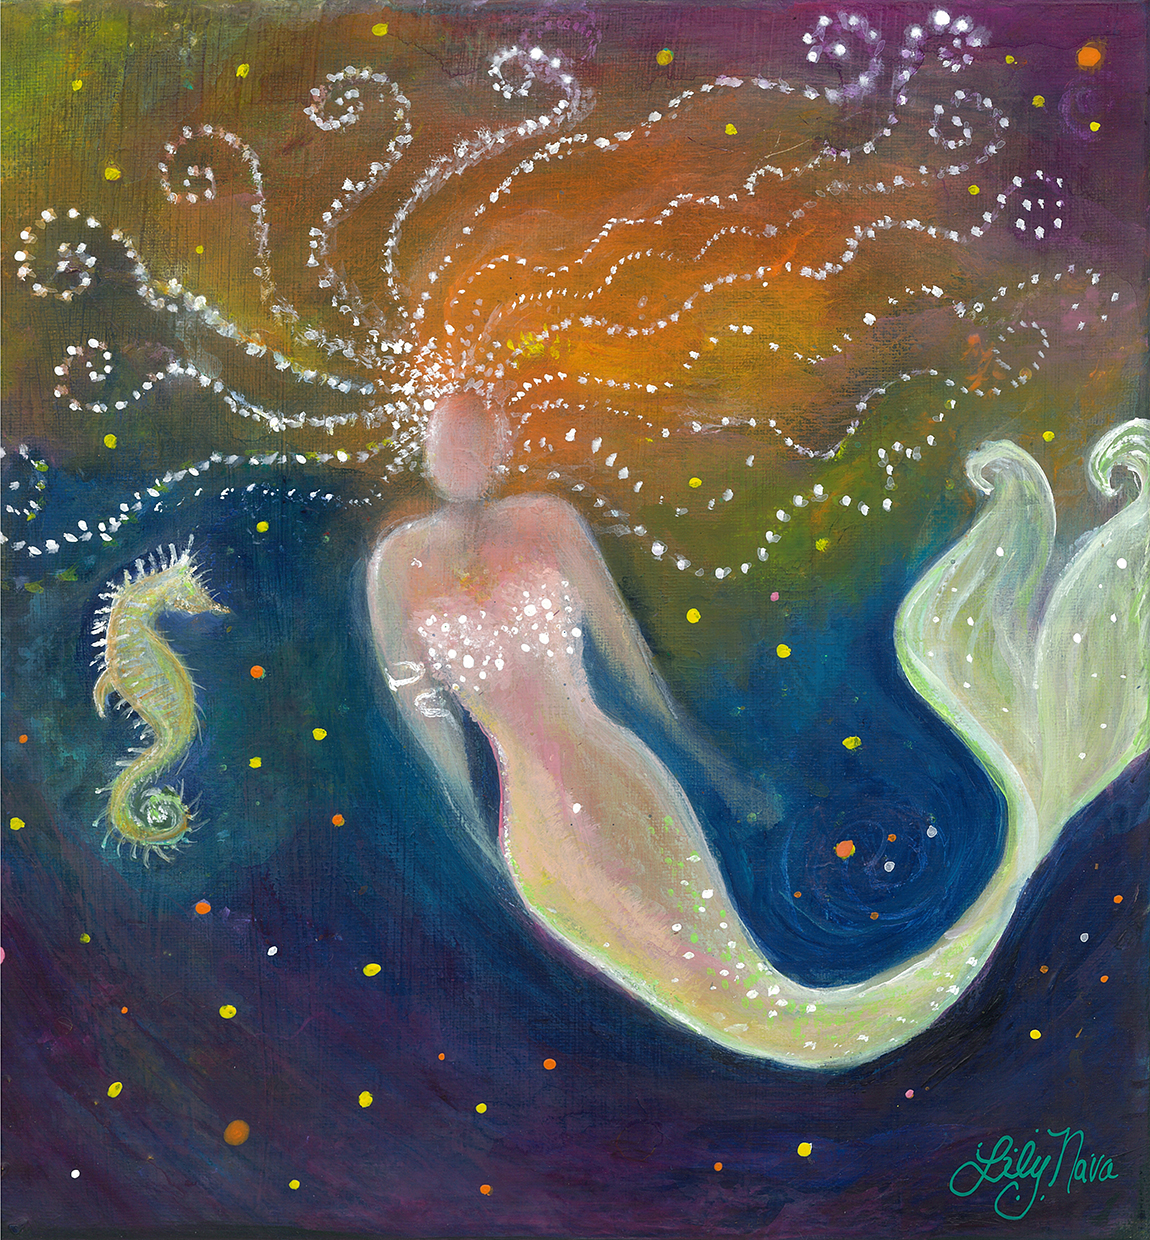 The Wish-Mermaid & Seahorse